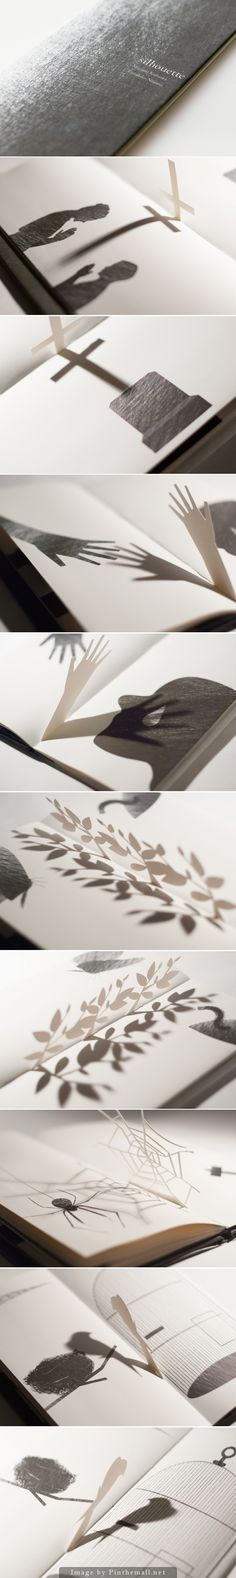 An interactive Japanese book by Megumi Kajiwara and Tathuhiko Nijima that includes pop-up silhouettes in-between pages http://silhouette-about.tumblr.com - created via http://pinthemall.net